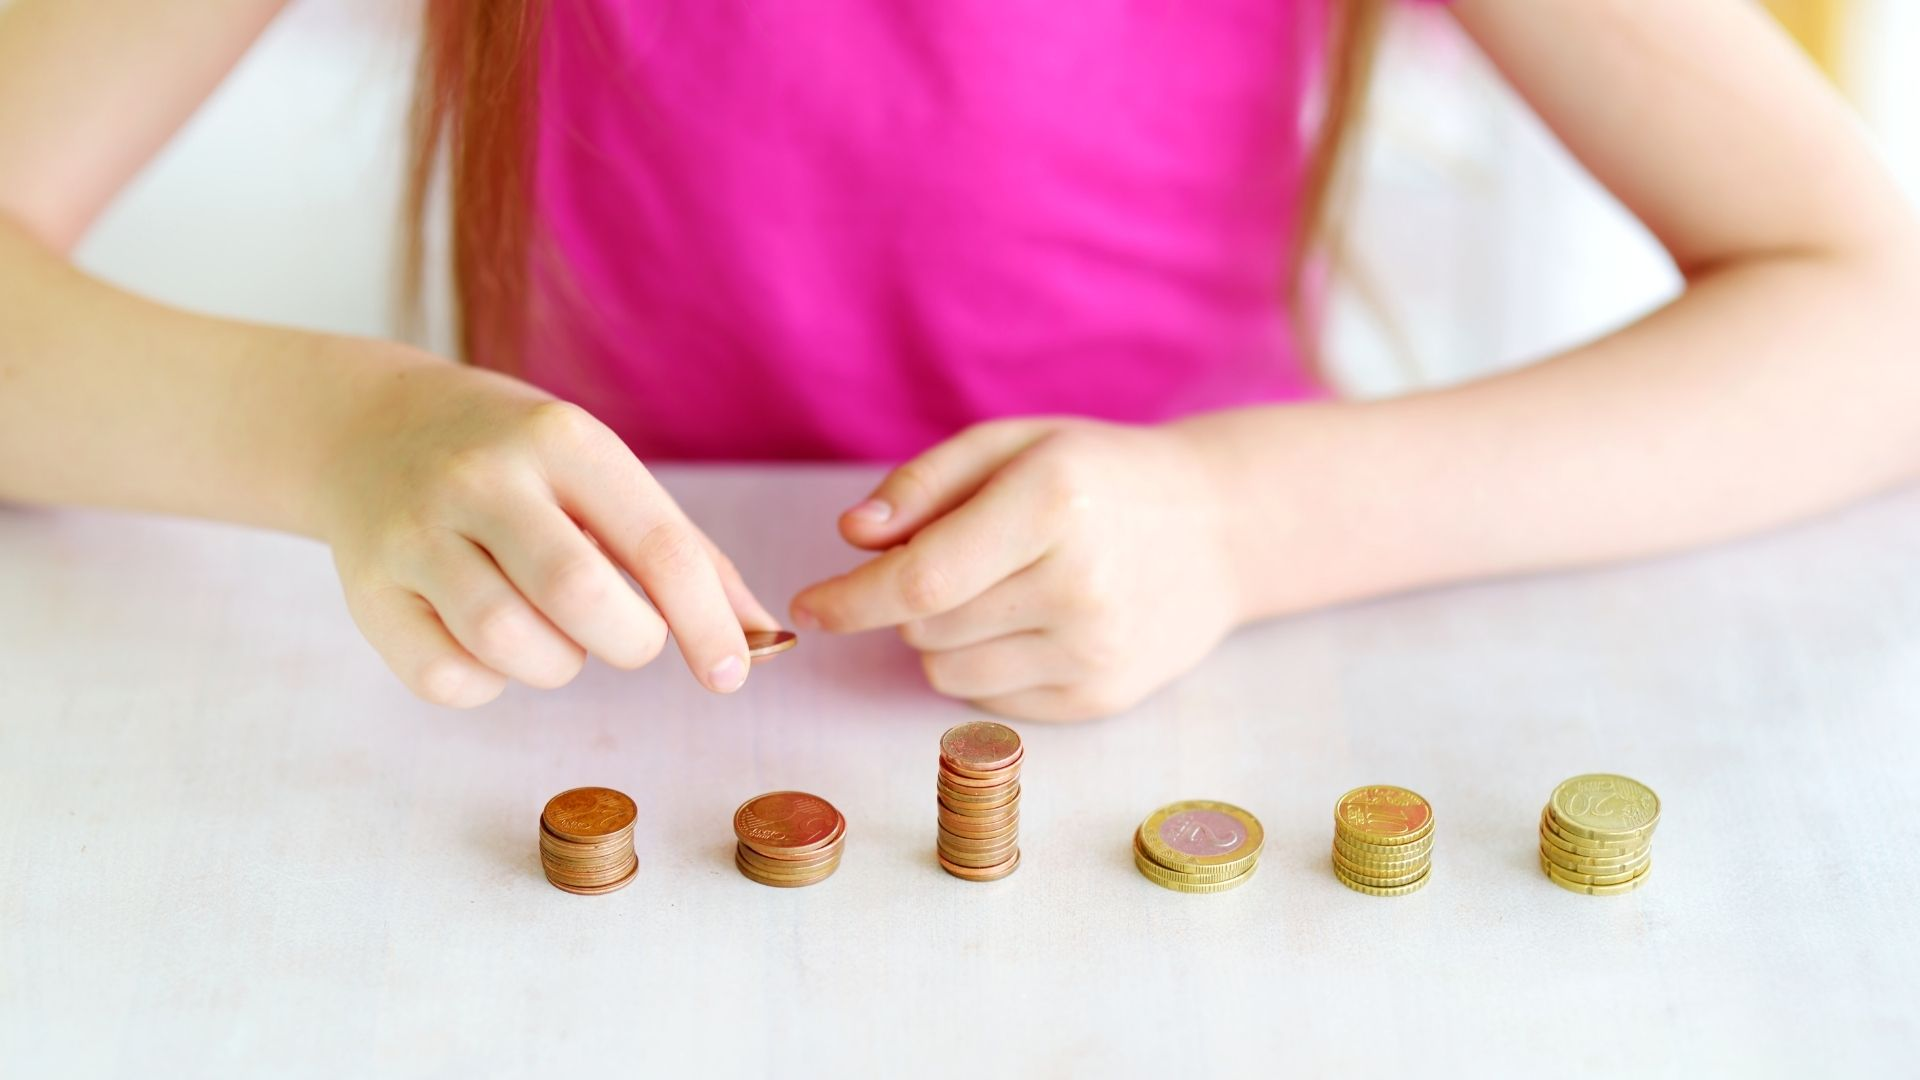 How can savers calculate their risk appetite?